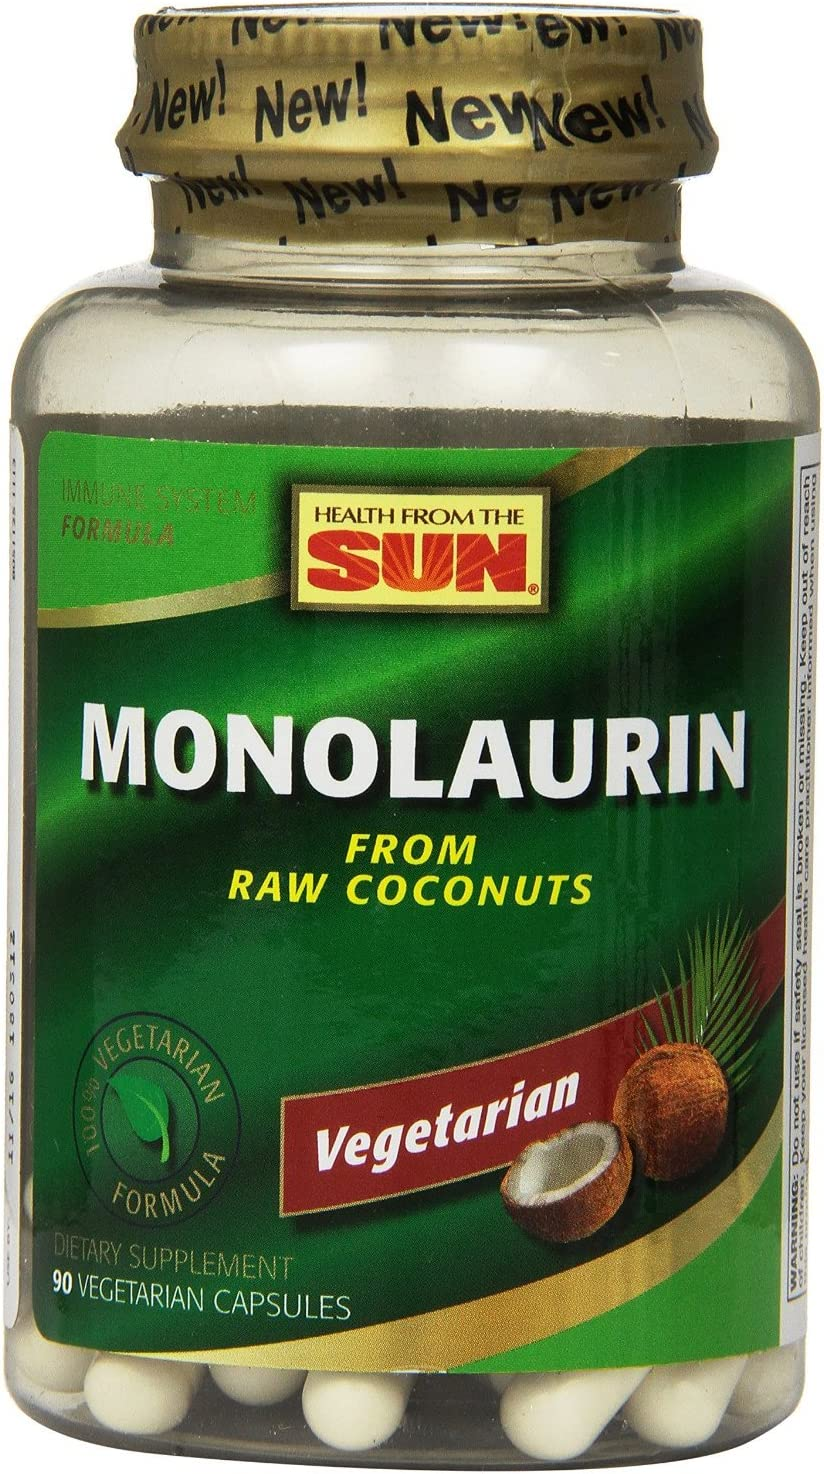 Monolaurin Health From The Sun 90 VCaps Pack of 3